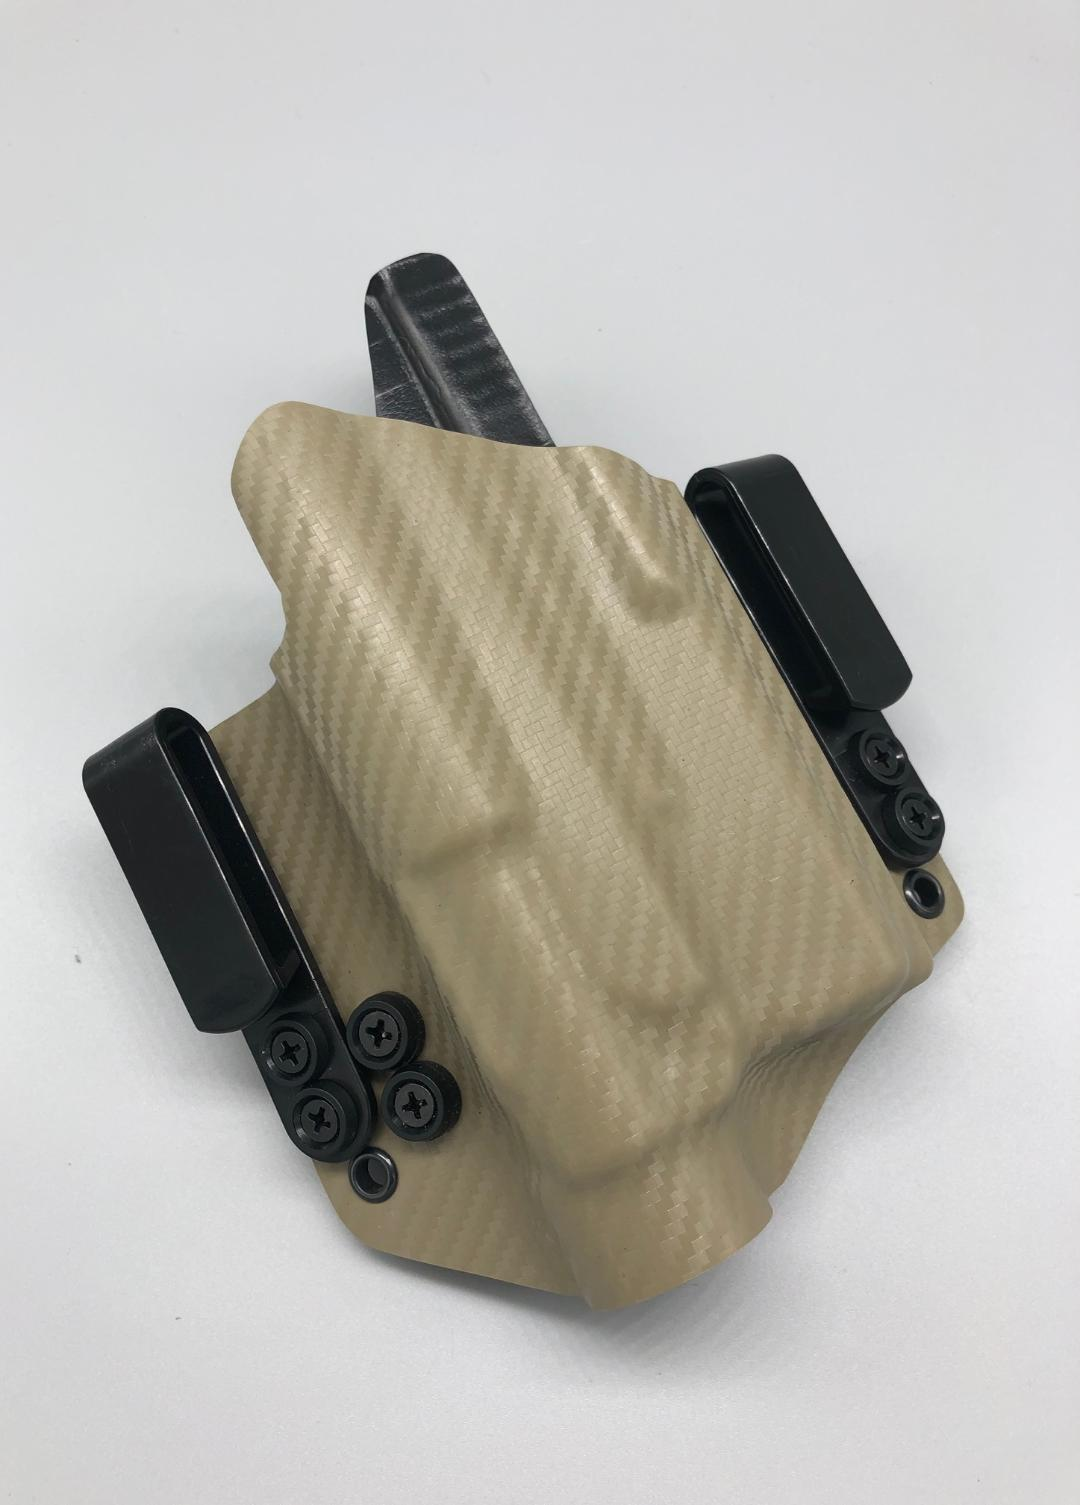 Add a light/laser to your holster